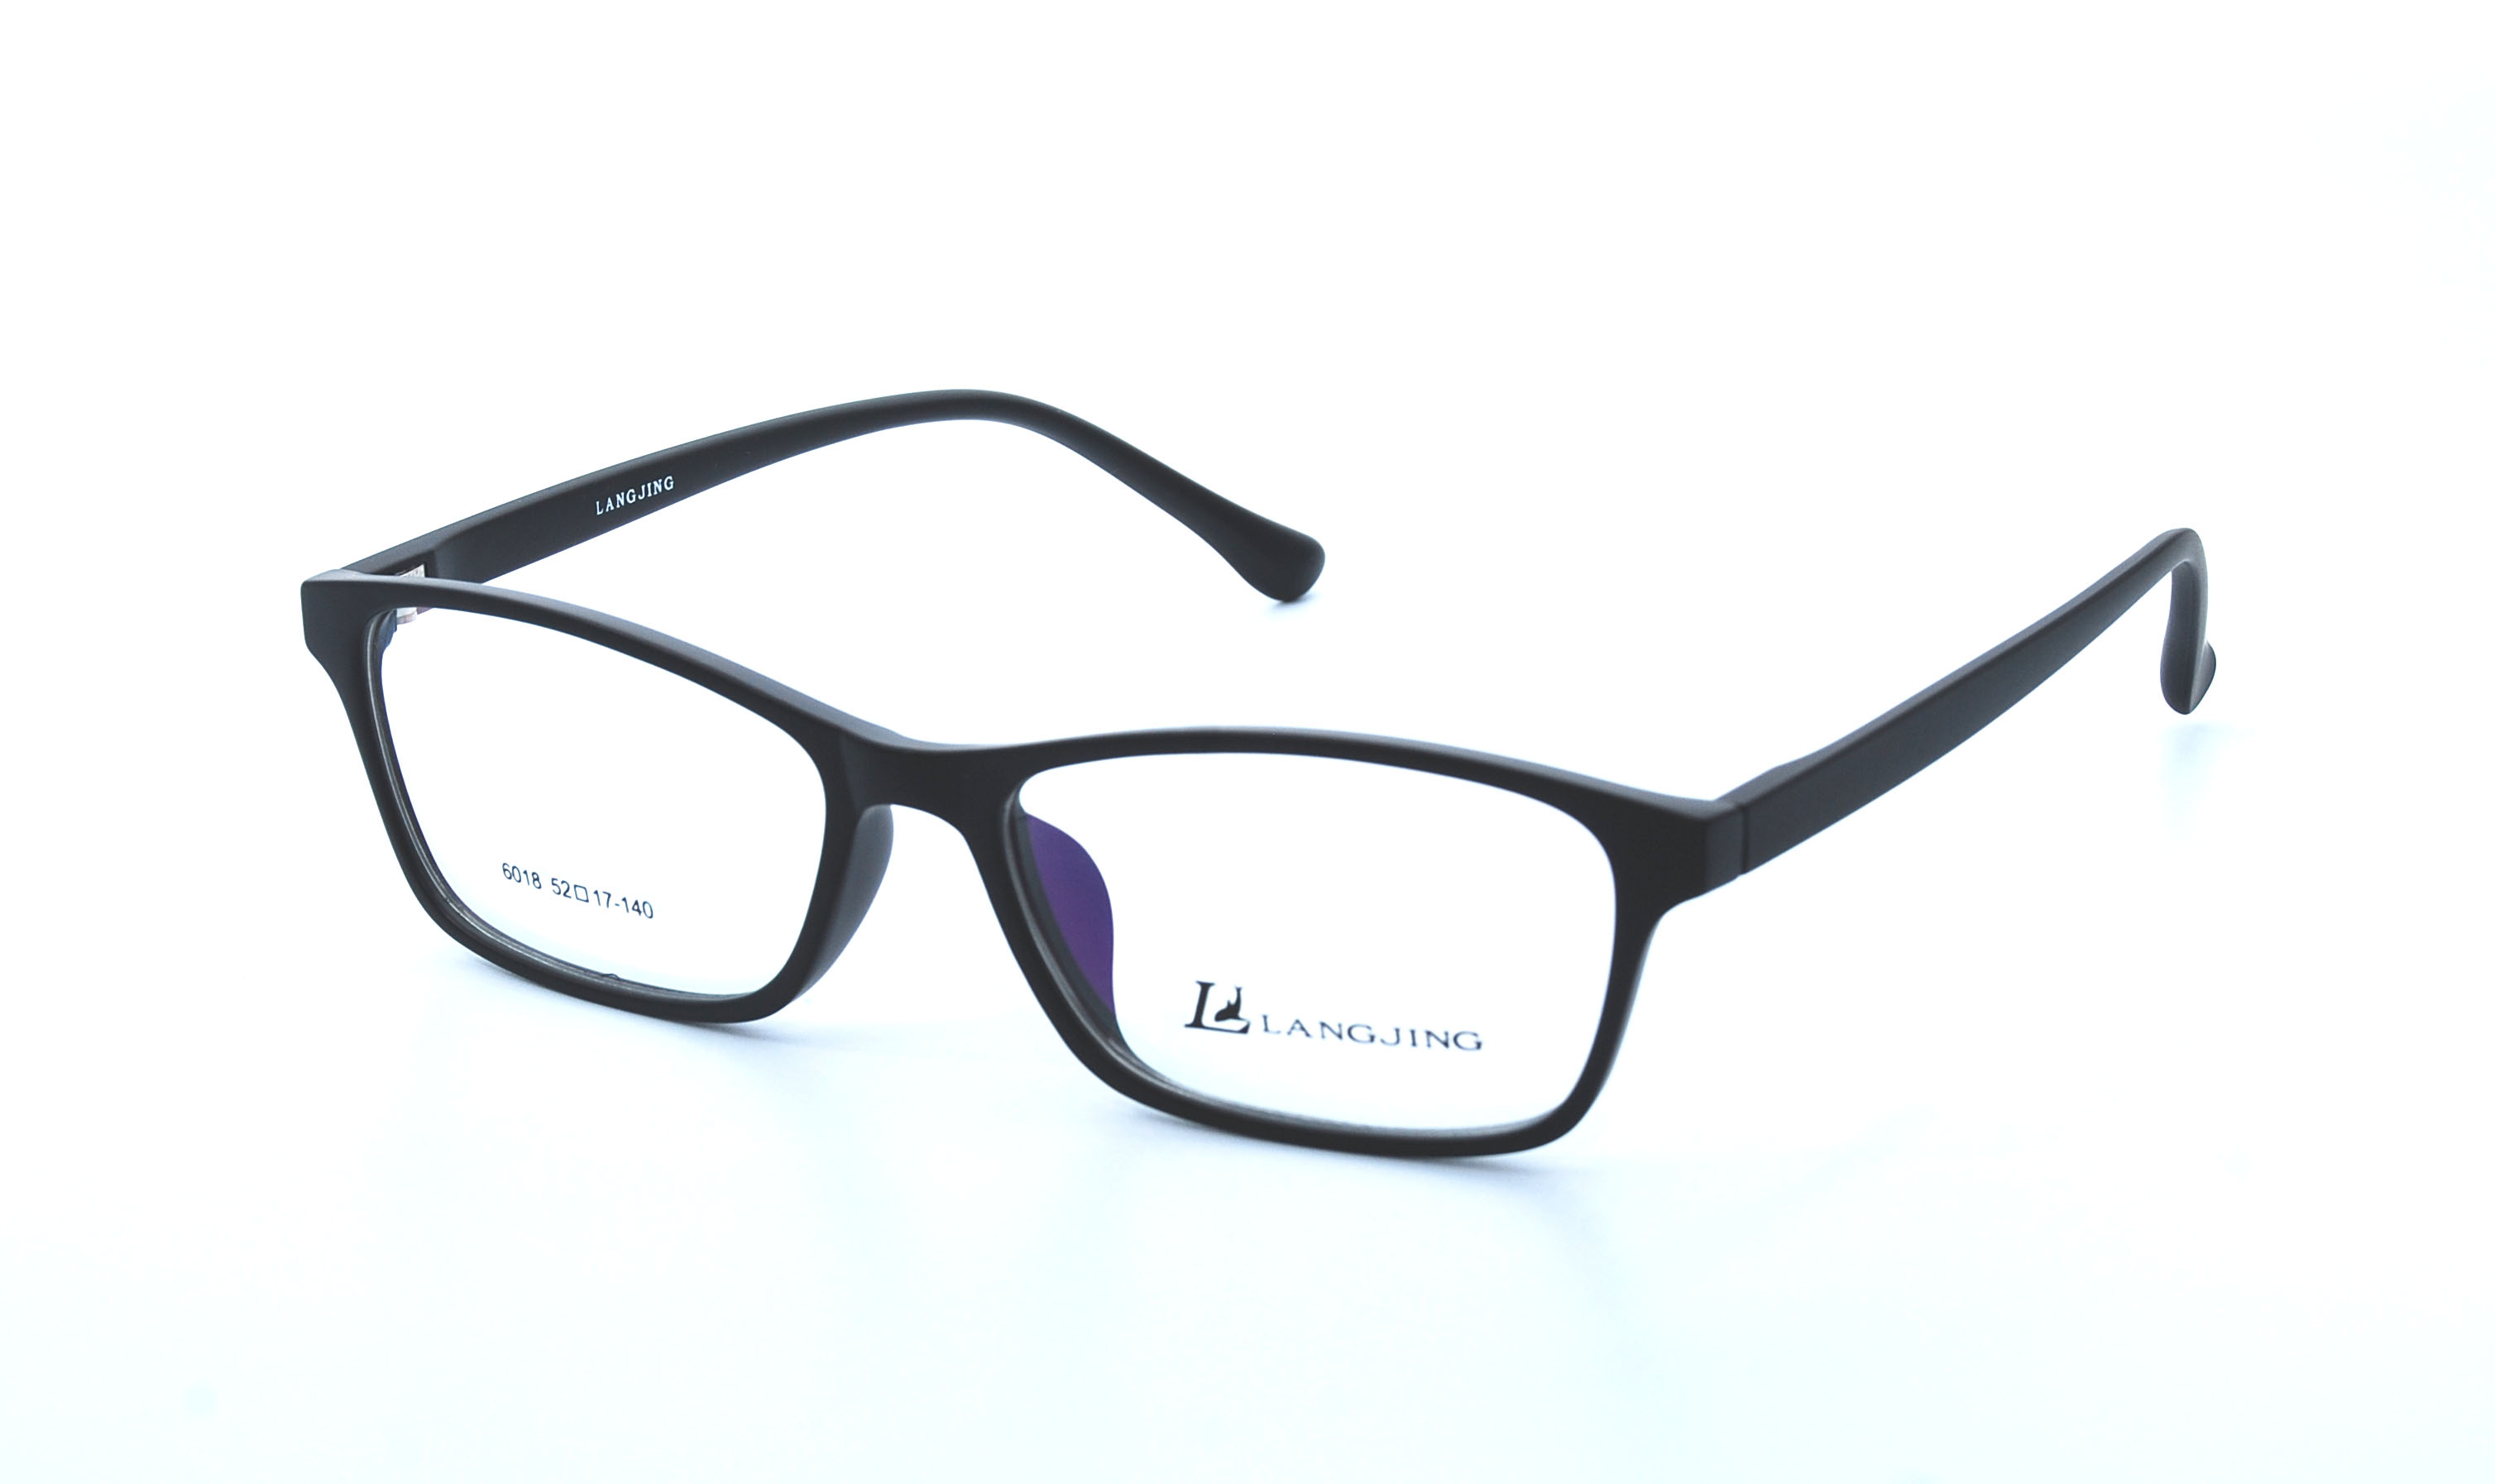 langjing eye glass